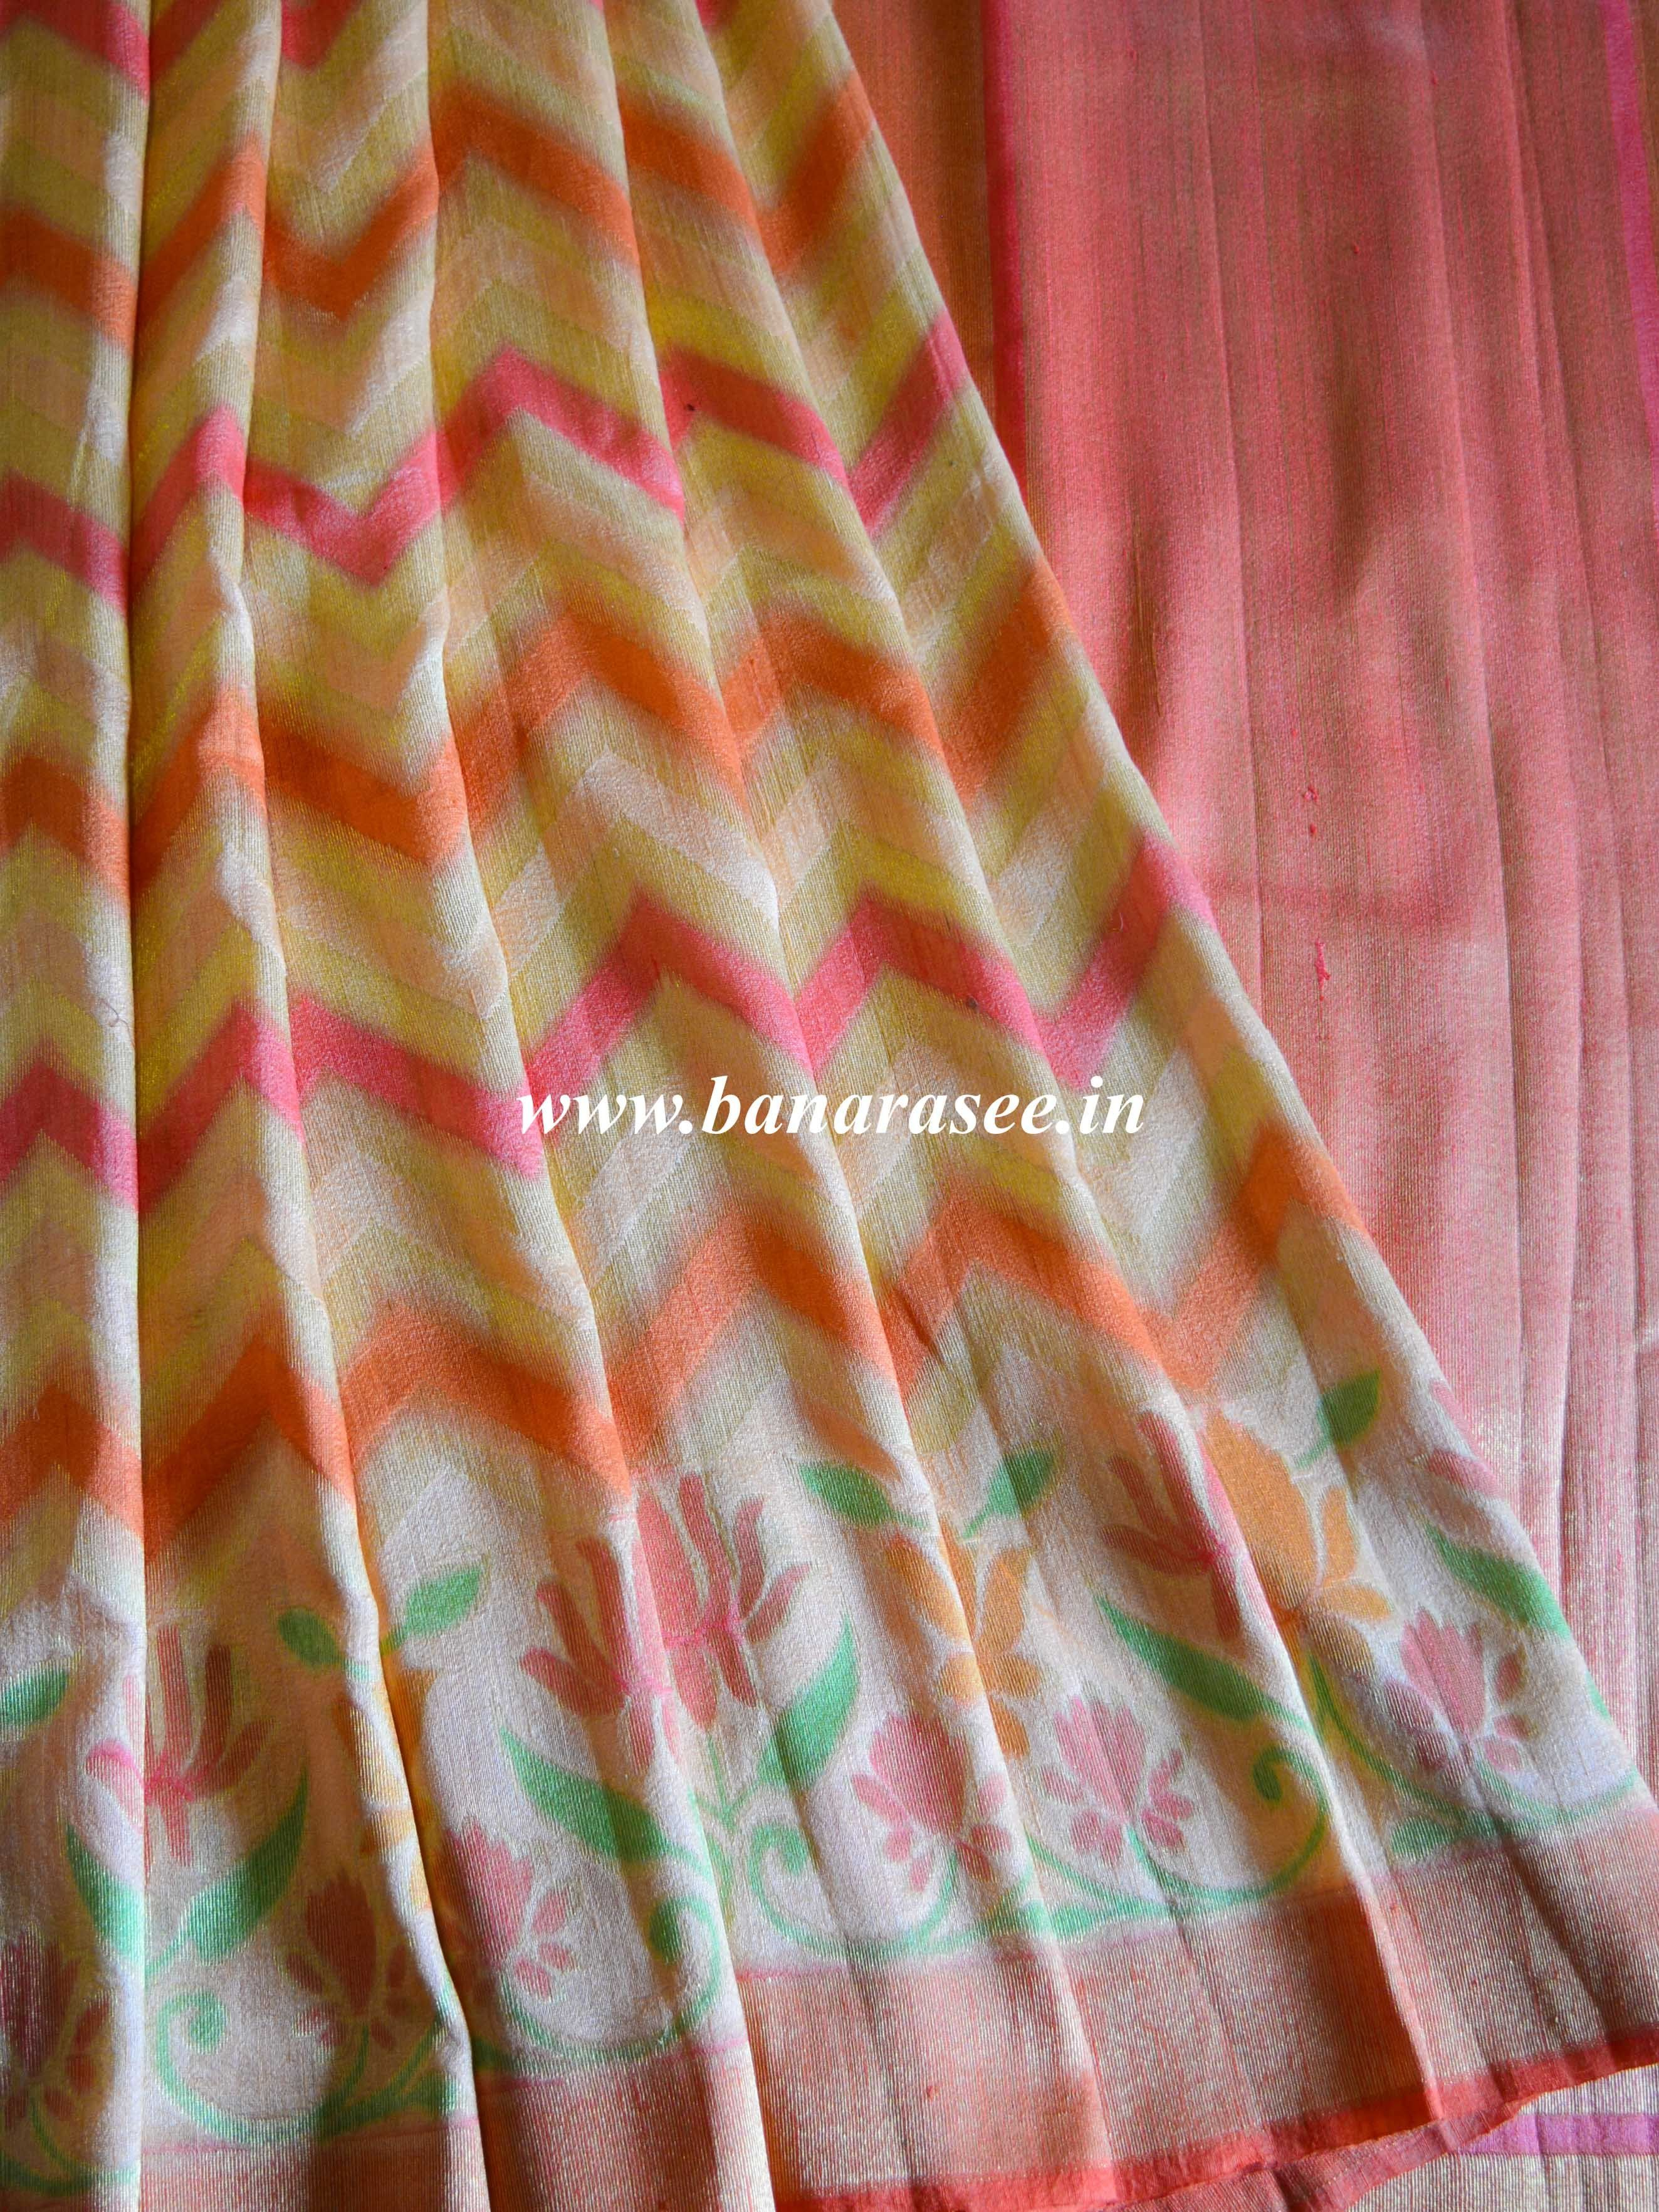 97bbd597a2bd10 Banarasee Pure Handloom Dupion Silk Saree With Handpainted Lotus Border -Peach